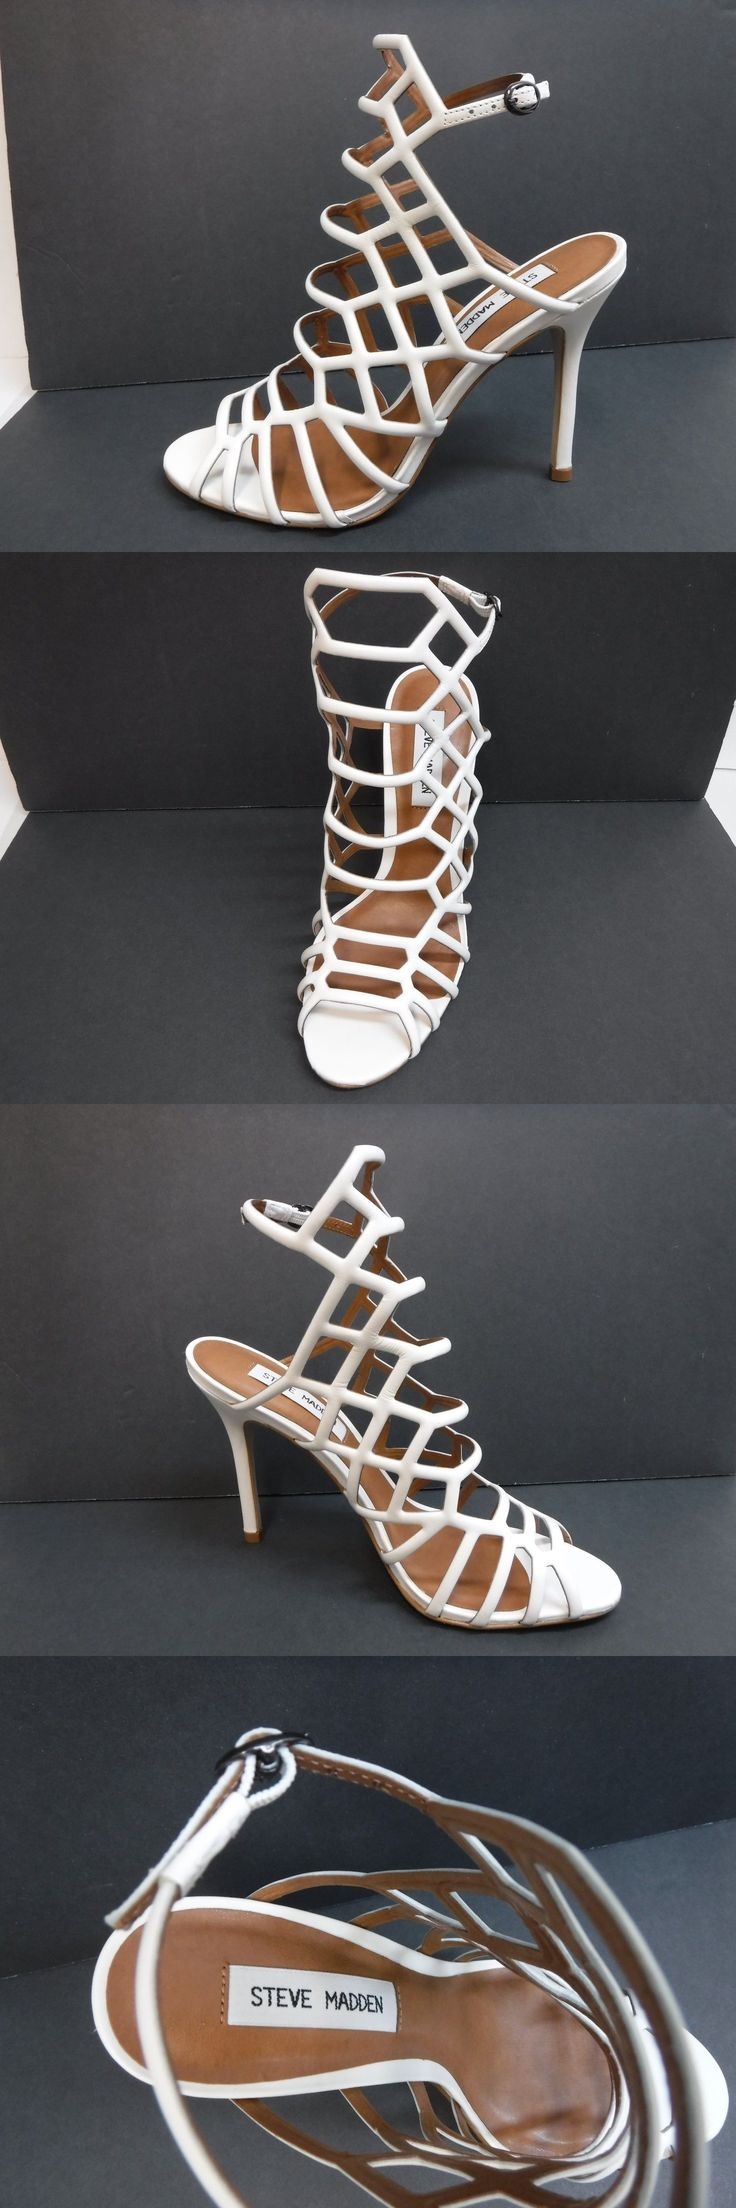 Heels 55793: Steve Madden Size 8.5 White Leather Open Toe Heels New Womens  Shoes -